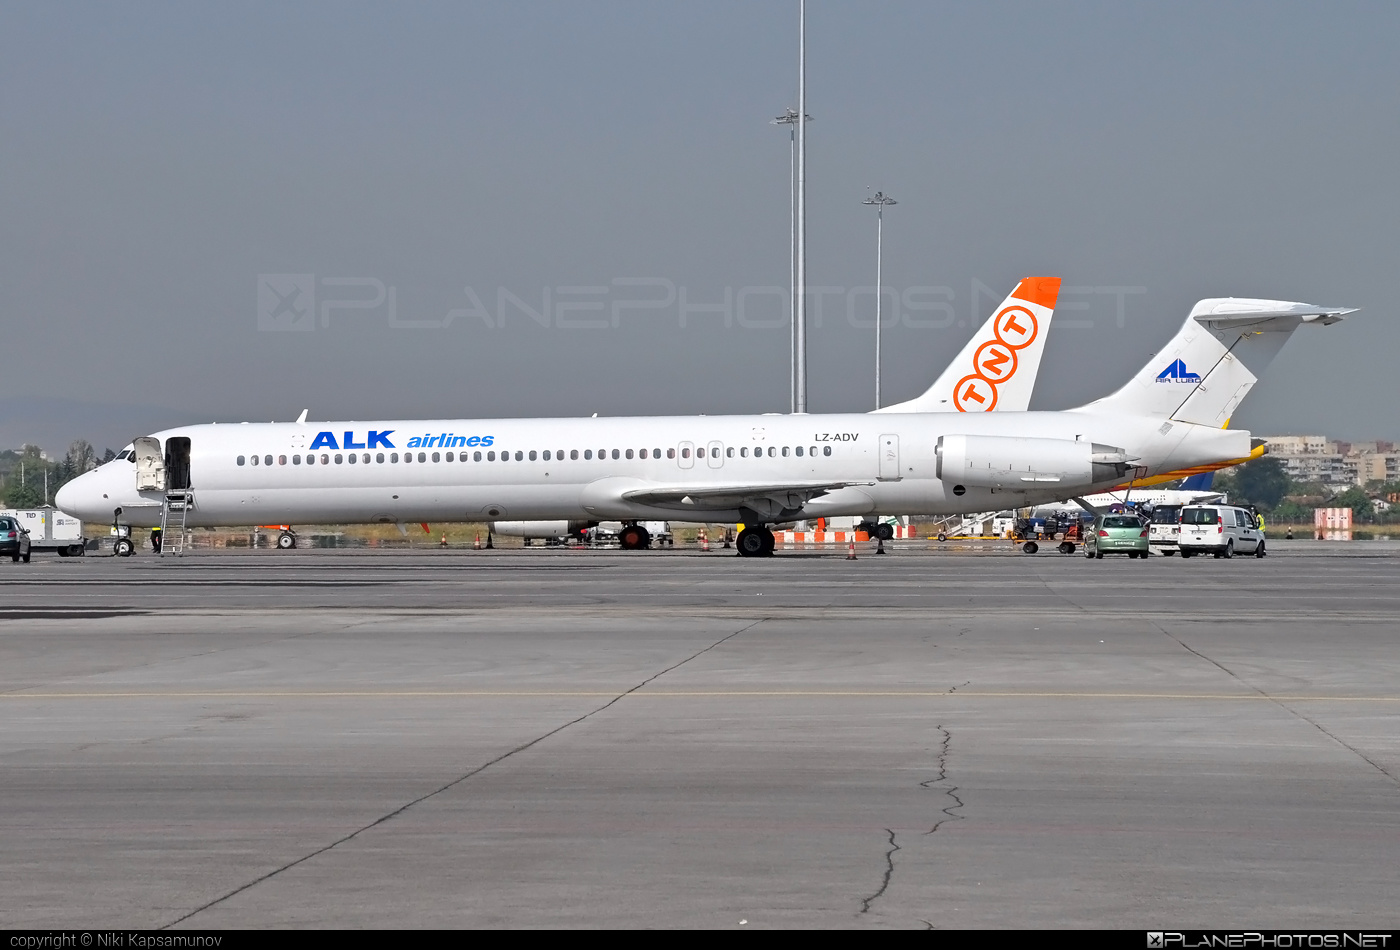 McDonnell Douglas MD-82 - LZ-ADV operated by ALK Airlines #mcdonnelldouglas #mcdonnelldouglas80 #mcdonnelldouglas82 #mcdonnelldouglasmd80 #mcdonnelldouglasmd82 #md80 #md82